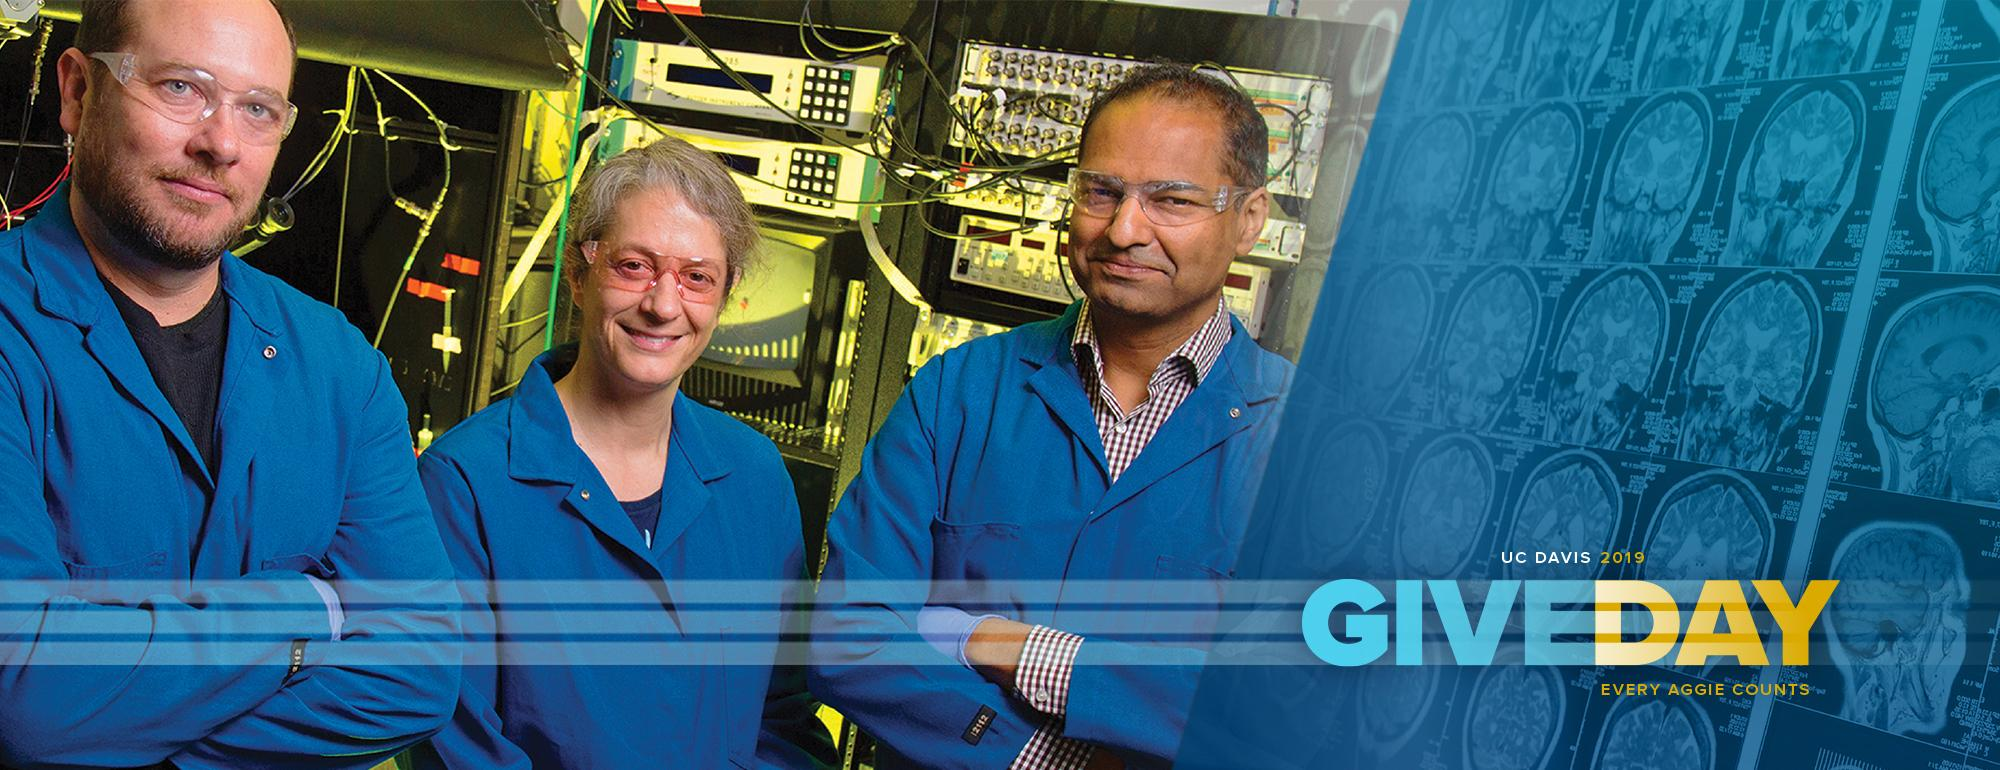 CNS Give Day Header Logo with 3 CNS faculty: Brian Wiltgen, Karen Zito, and Charan Ranganath